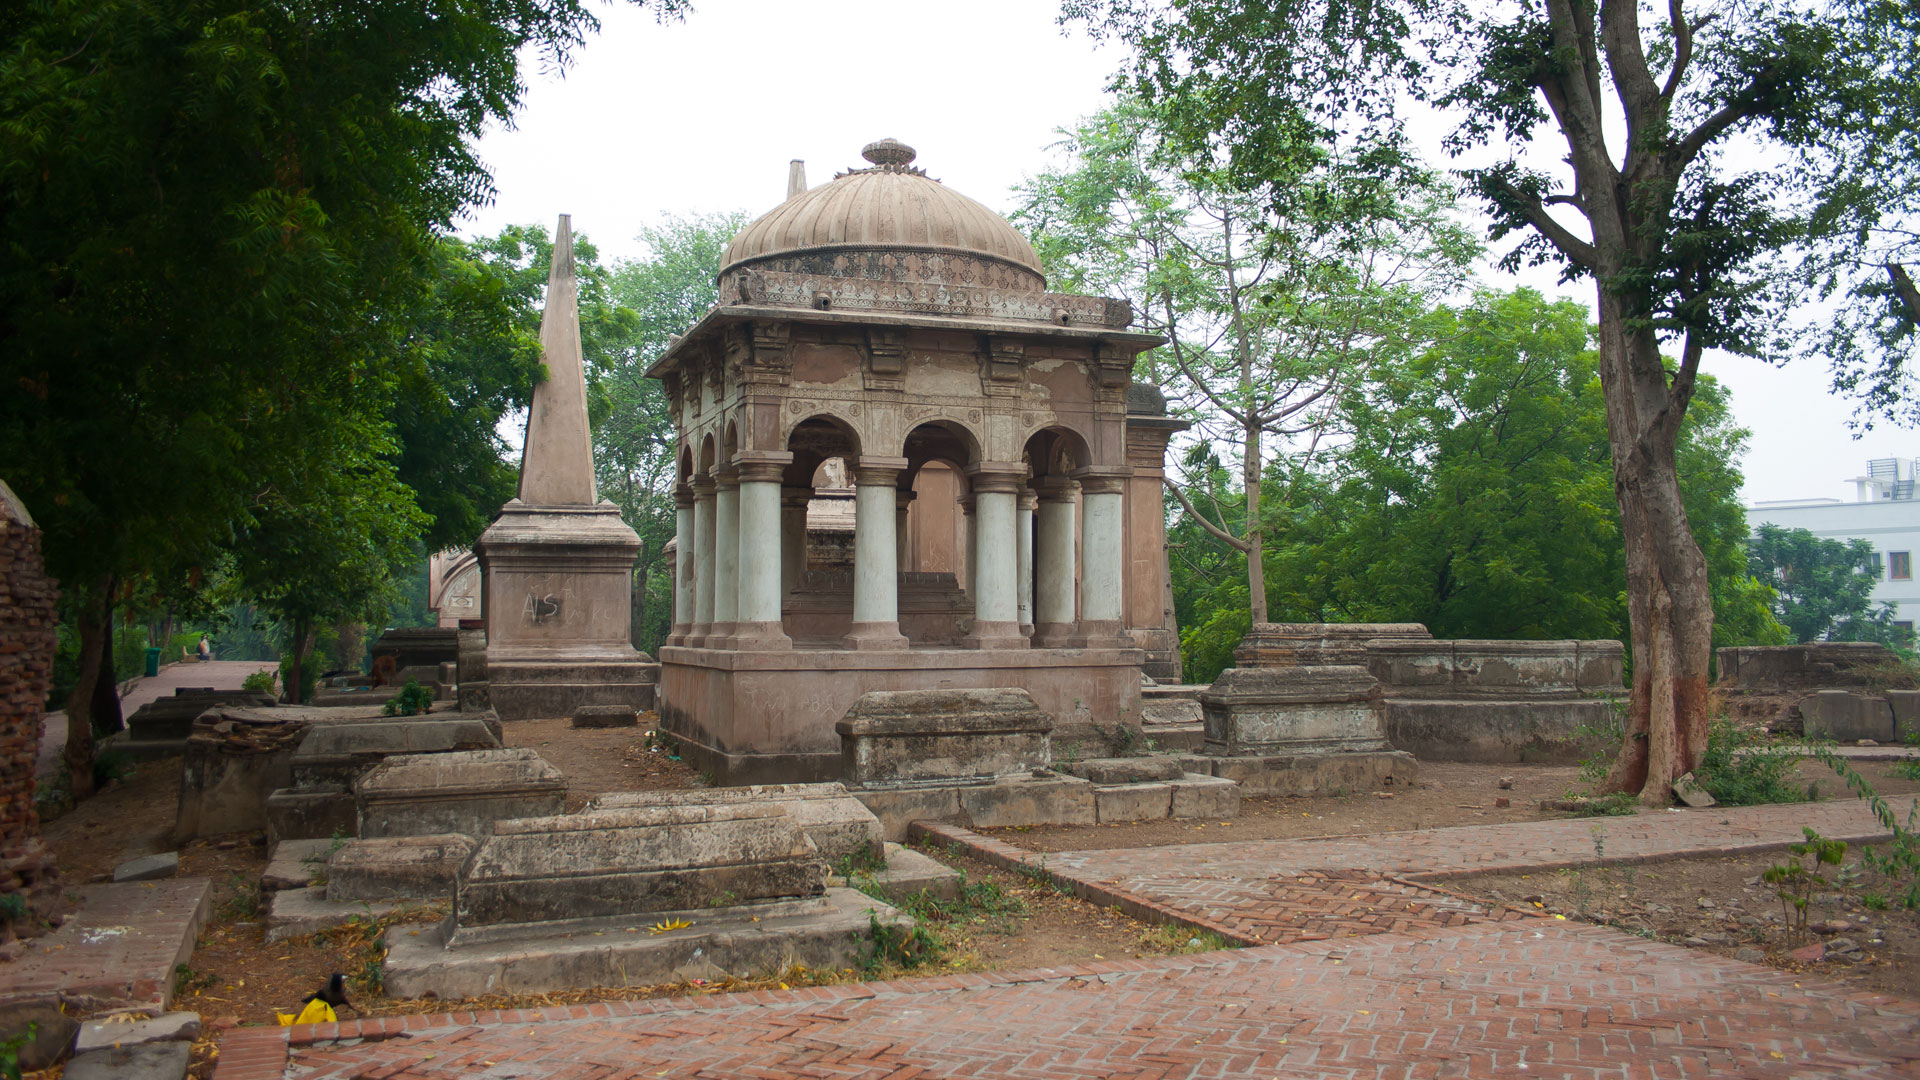 The Dutch tombs in Ahmedabad